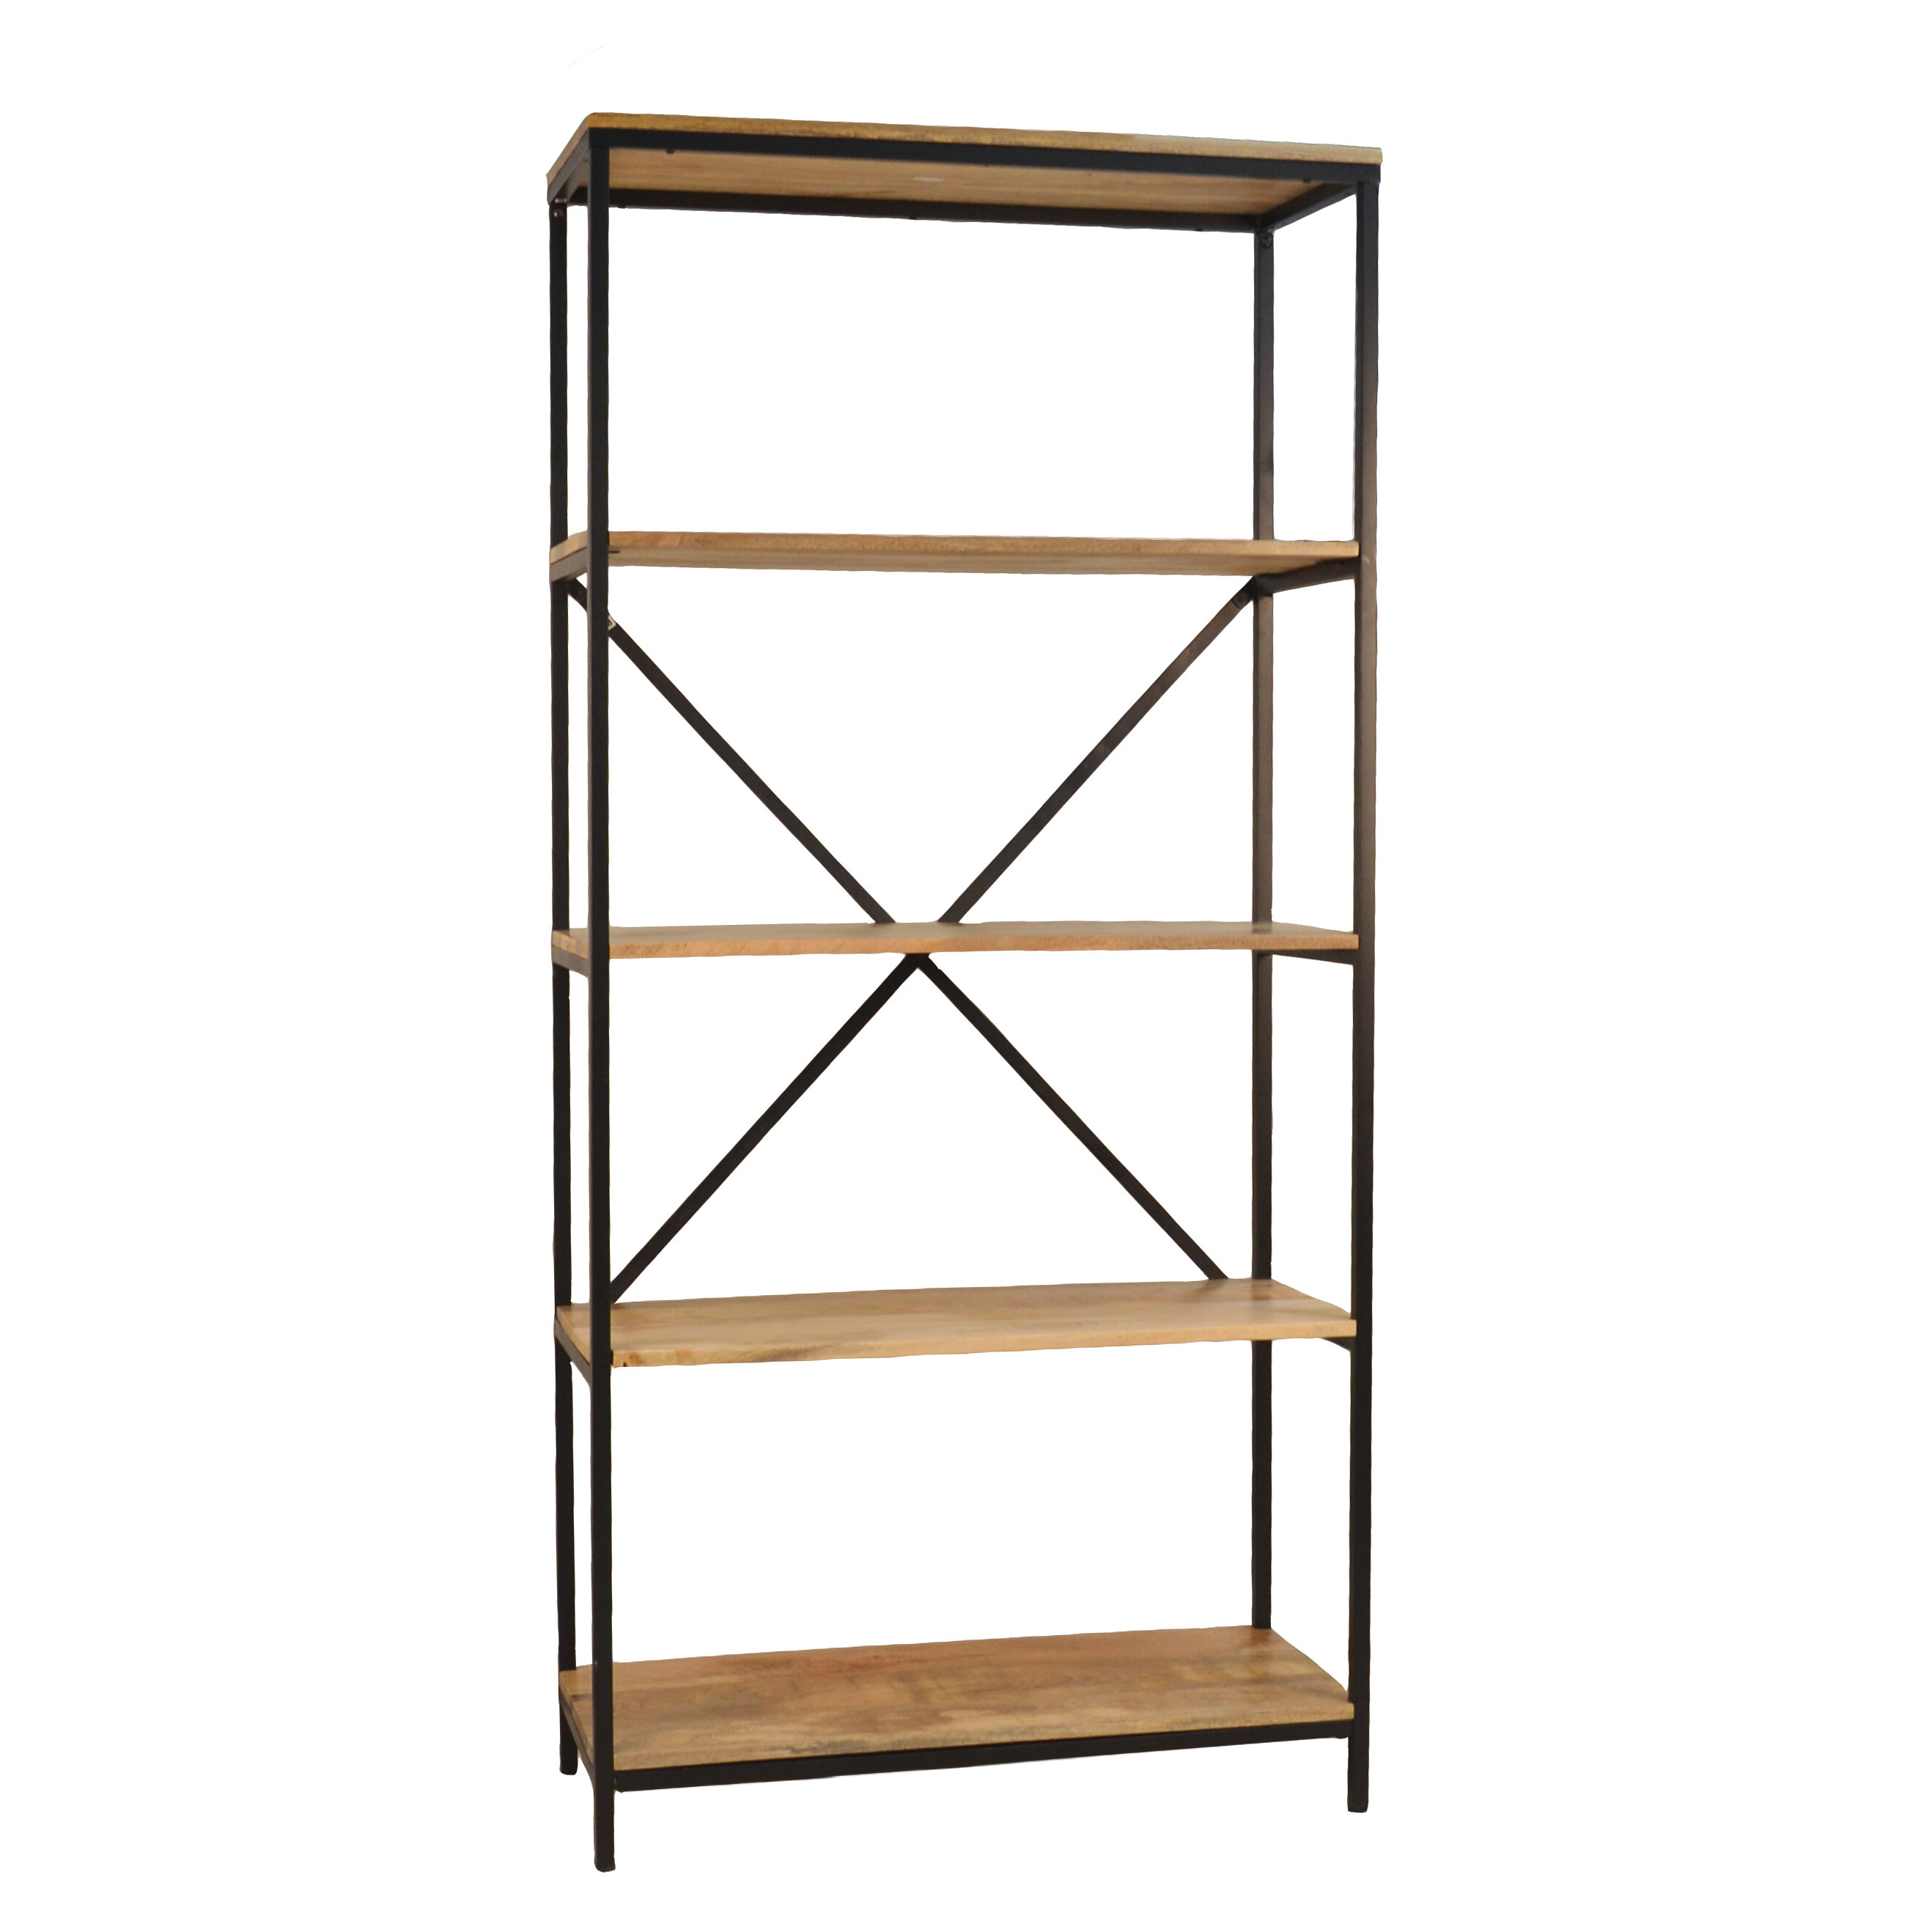 Defranco Etagere Bookcase Within 2020 Moriann Etagere Bookcases (View 3 of 20)